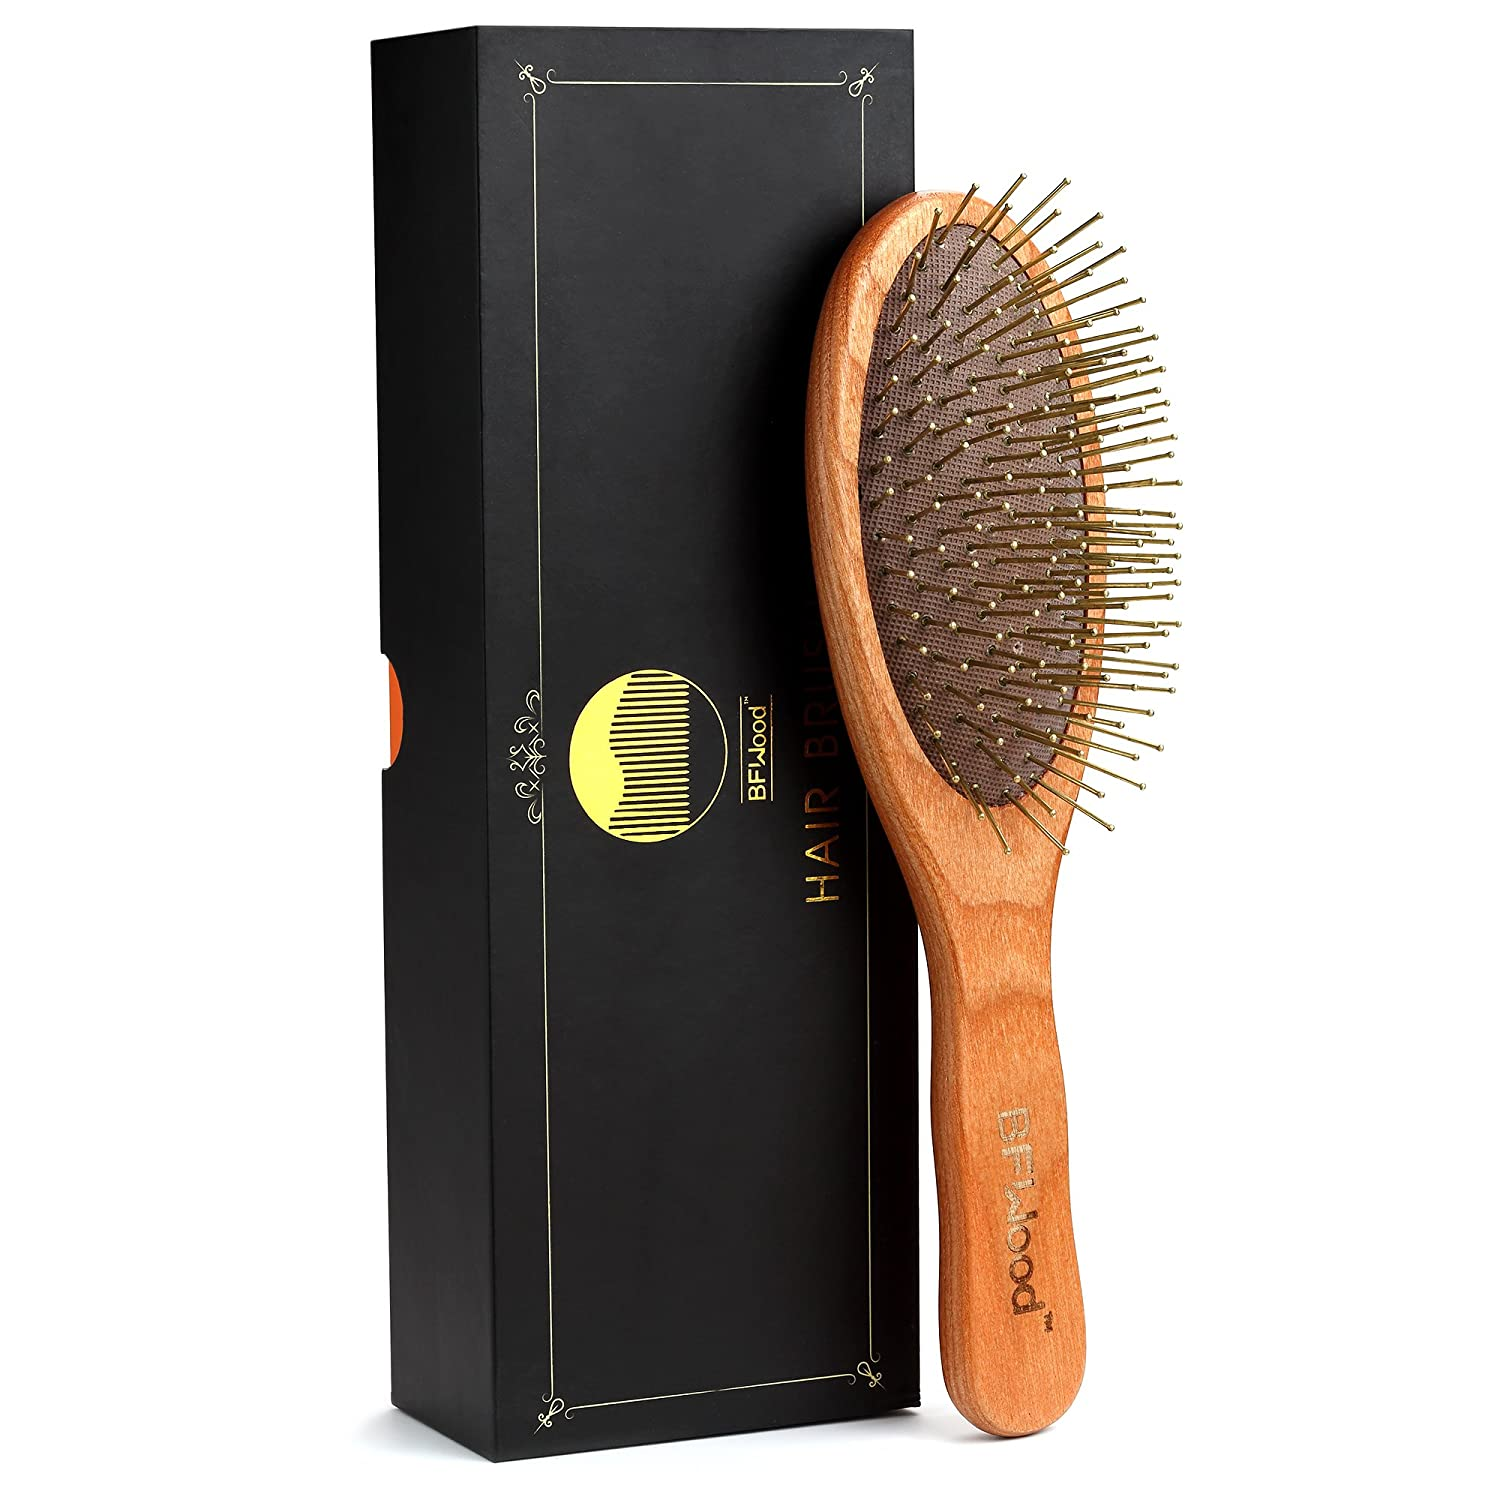 BFWood Detangling Brush for Thick and Curly Hair - Wooden Handle with Metal Bristles